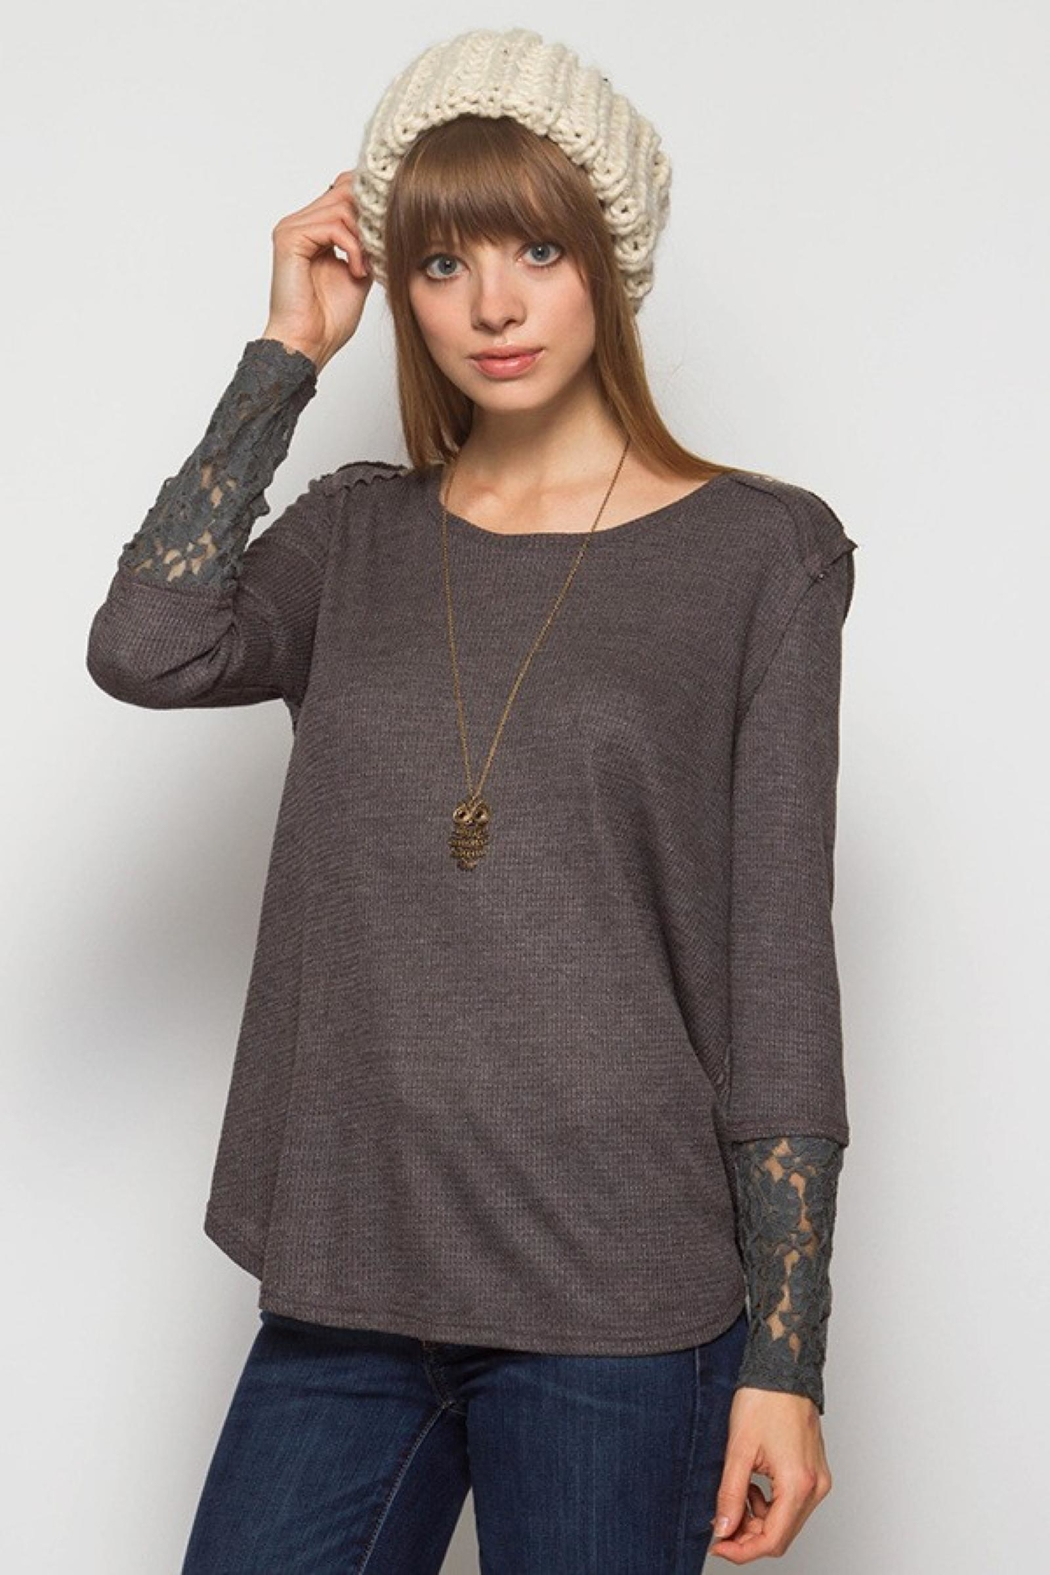 People Outfitter Lace Thermal Top - Main Image